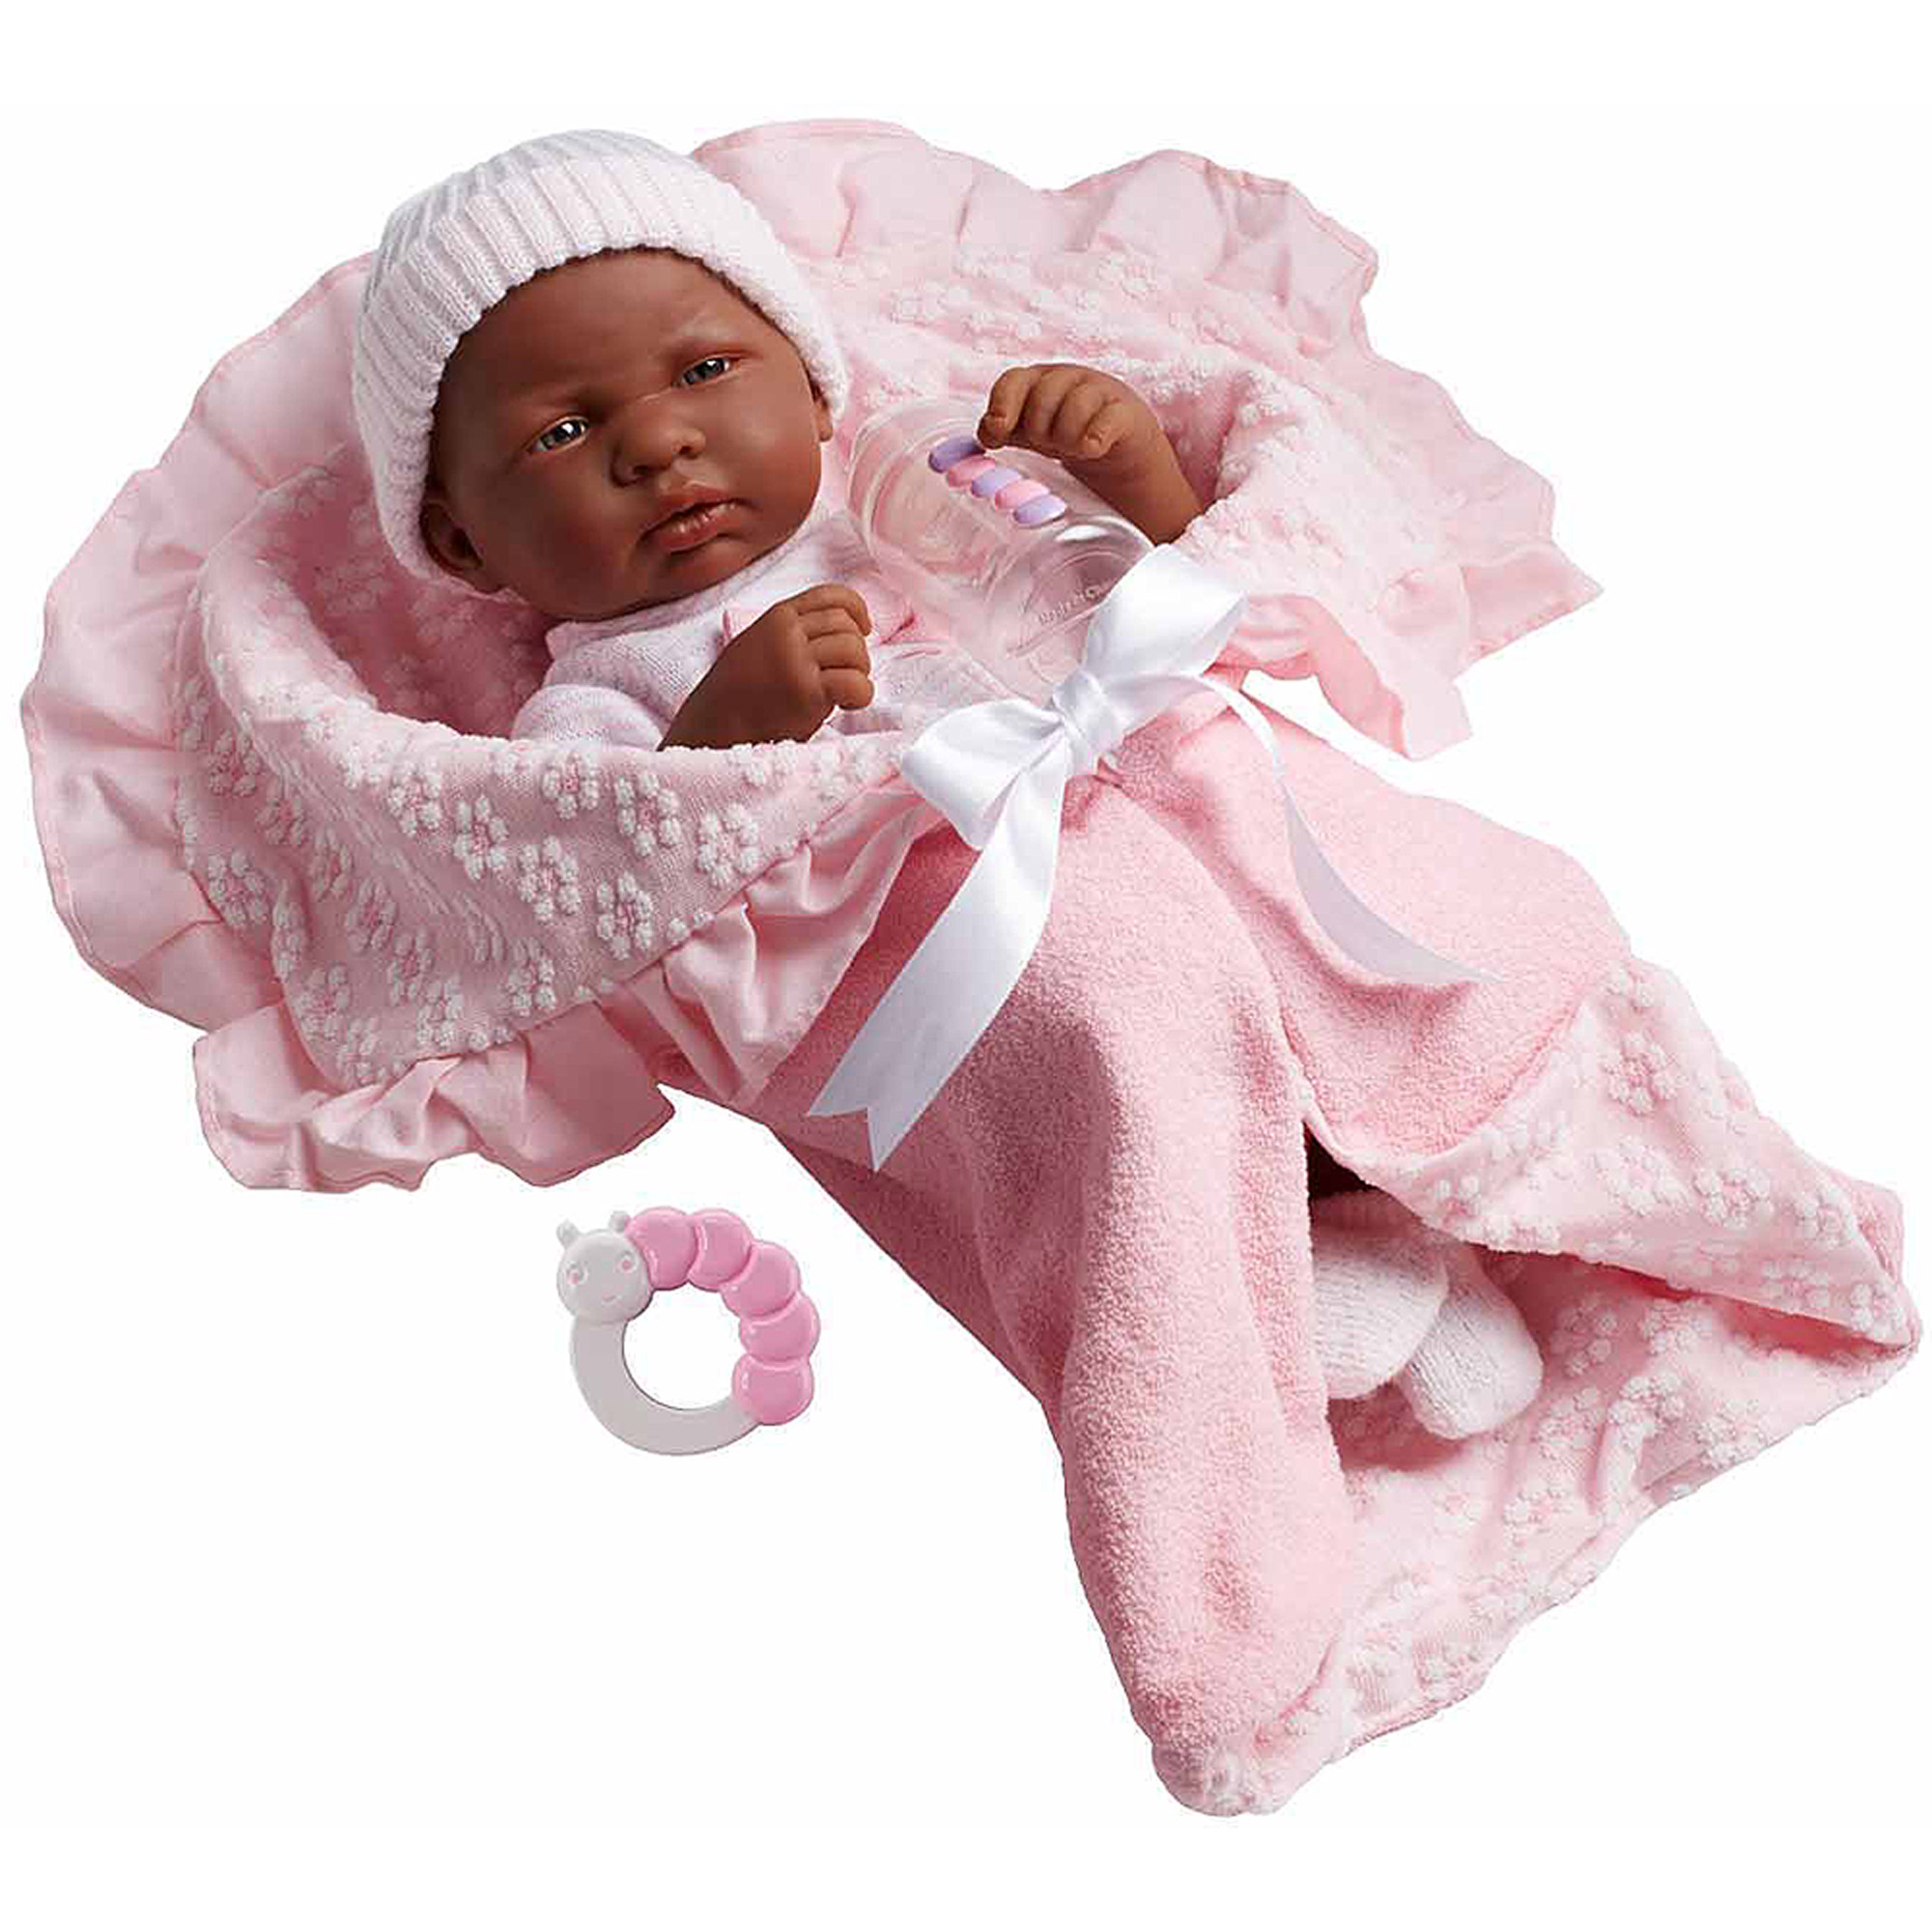 "La Newborn 15.5"" Soft-Body Realistic Newborn Baby Doll Deluxe Layette Gift Set with Bunting"